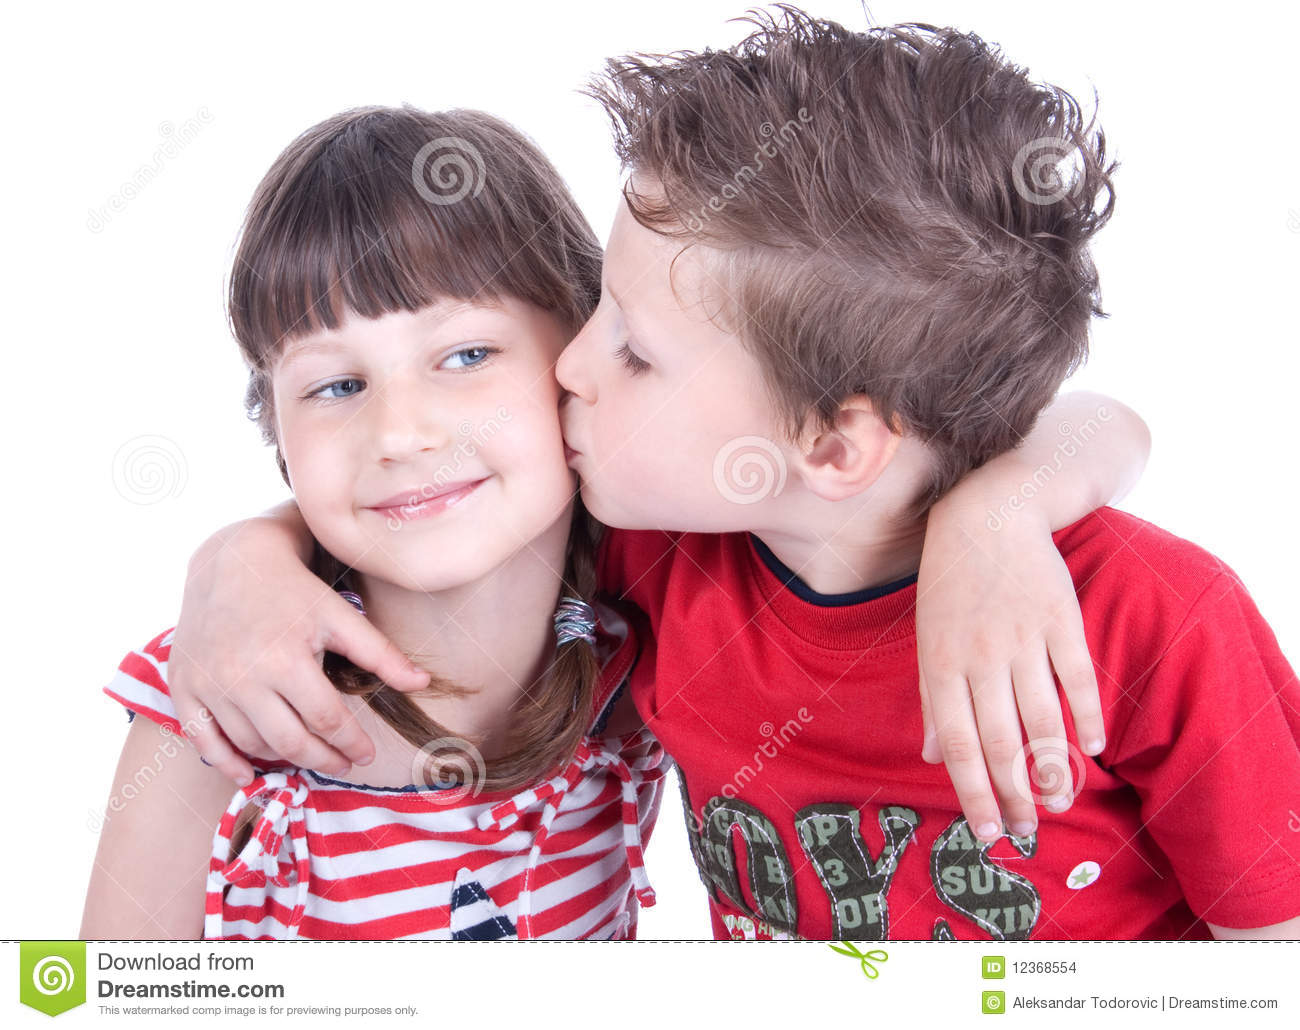 cute boy kissing a nice girl stock photo - image of growth, little